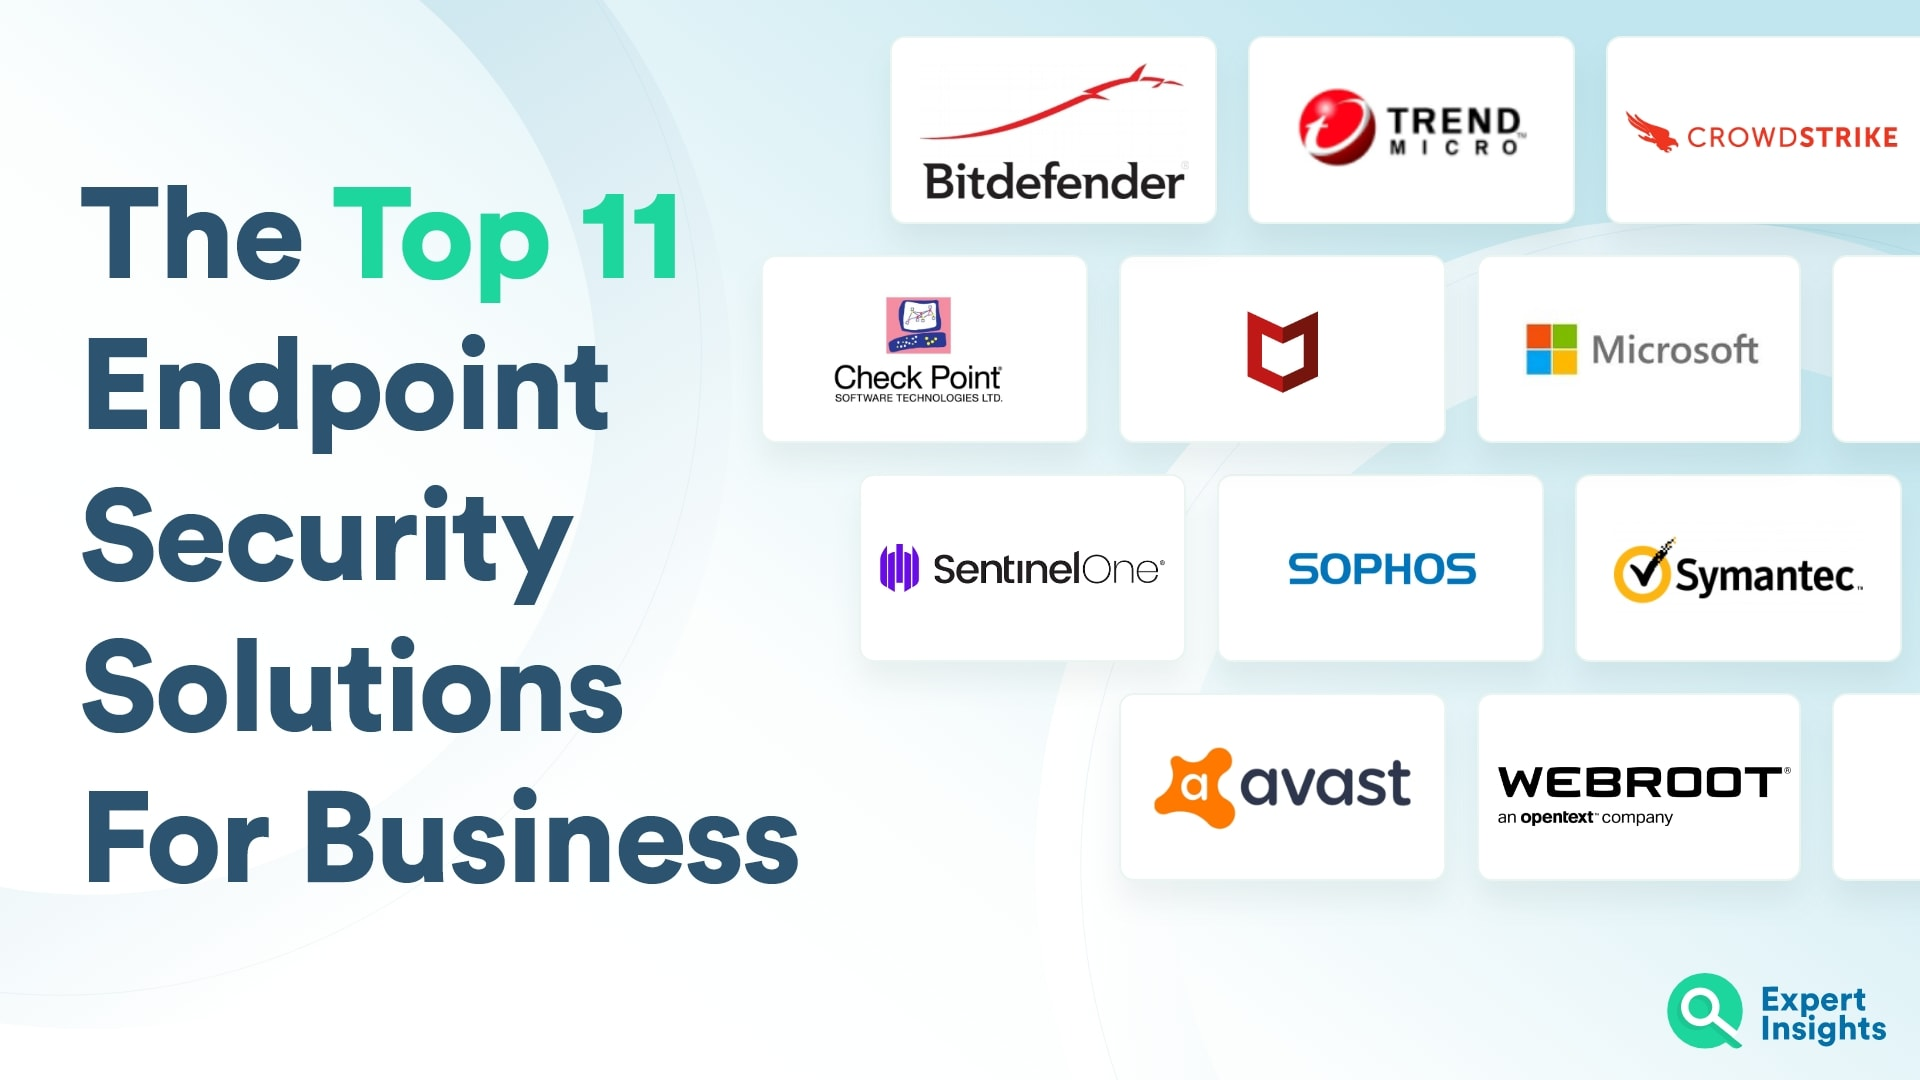 Top Endpoint Security Solutions For Business - Expert Insights